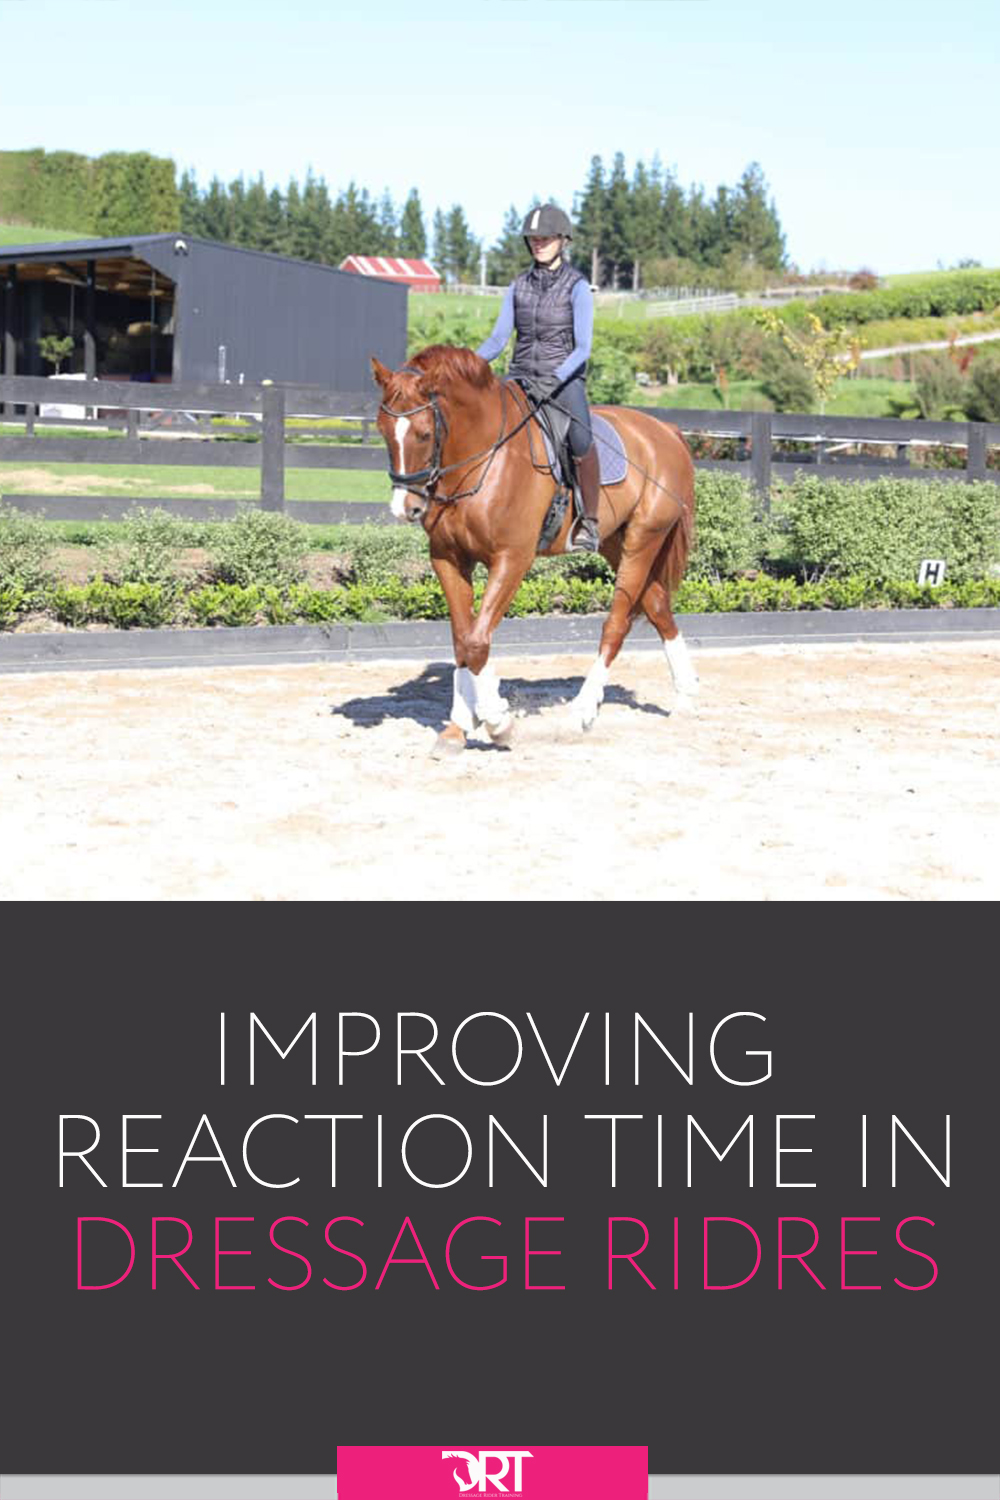 Learn how to develop your reaction time specific to dressage riding. #dressagerider #dressage #dressagetraining